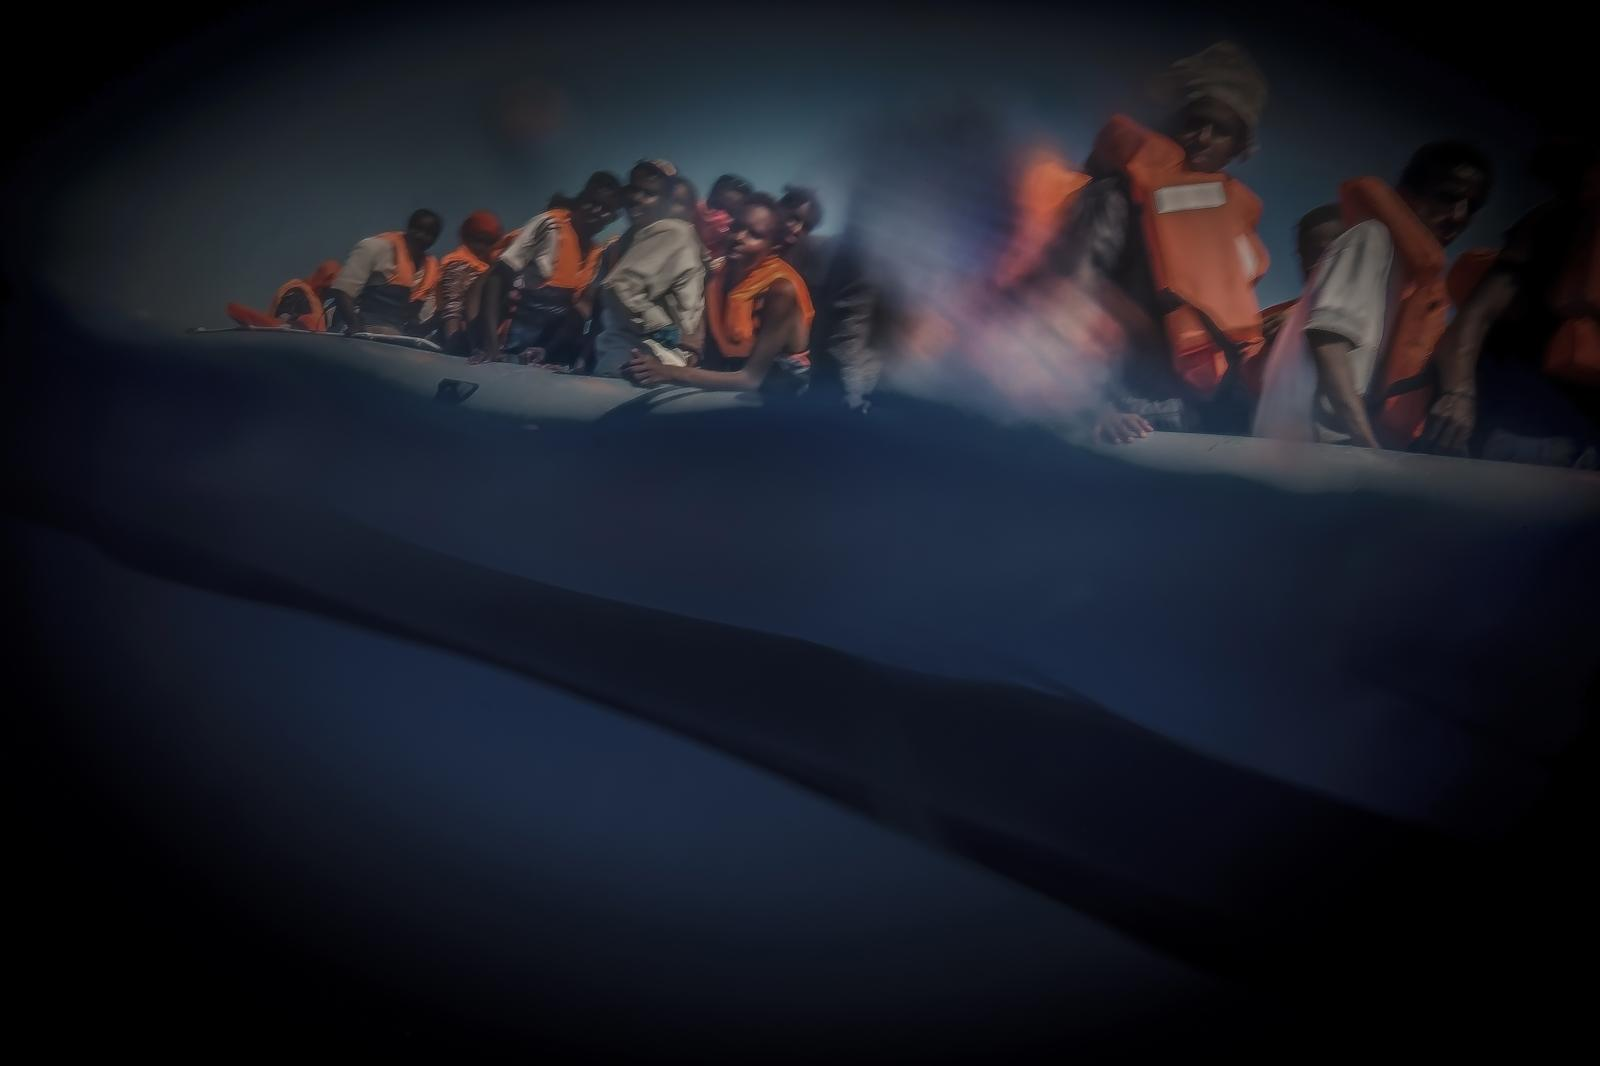 Refugees and migrants on the crossing from Libya to Europe on board fragile inflatable boats used to reach their destination.